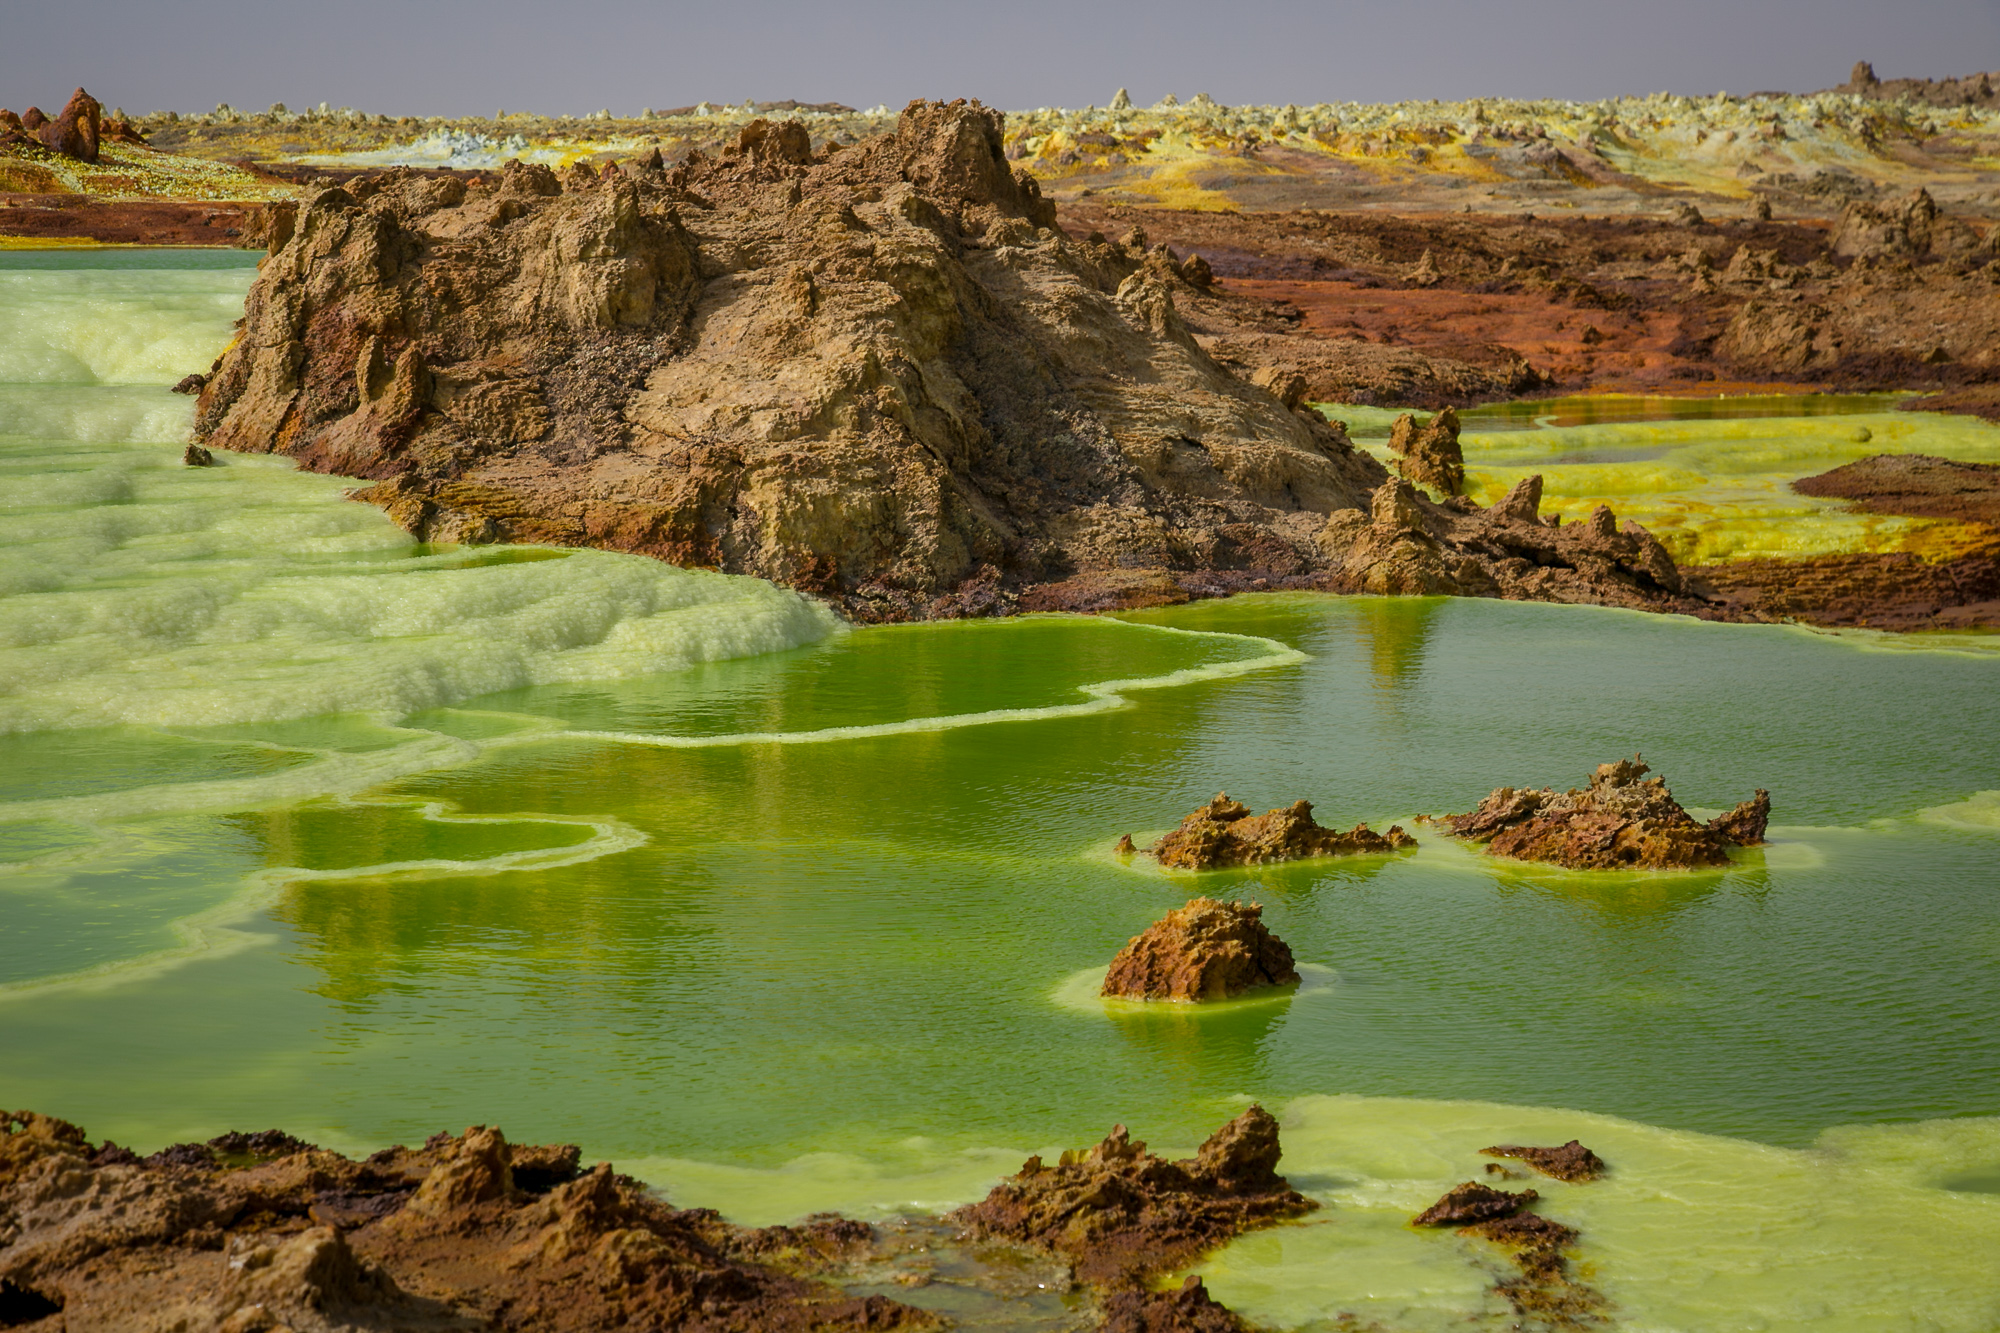 Northern Ethiopia's Danakil Depression is filled with brightly-colored mineral pools © Kim I. Mott, all rights reserved